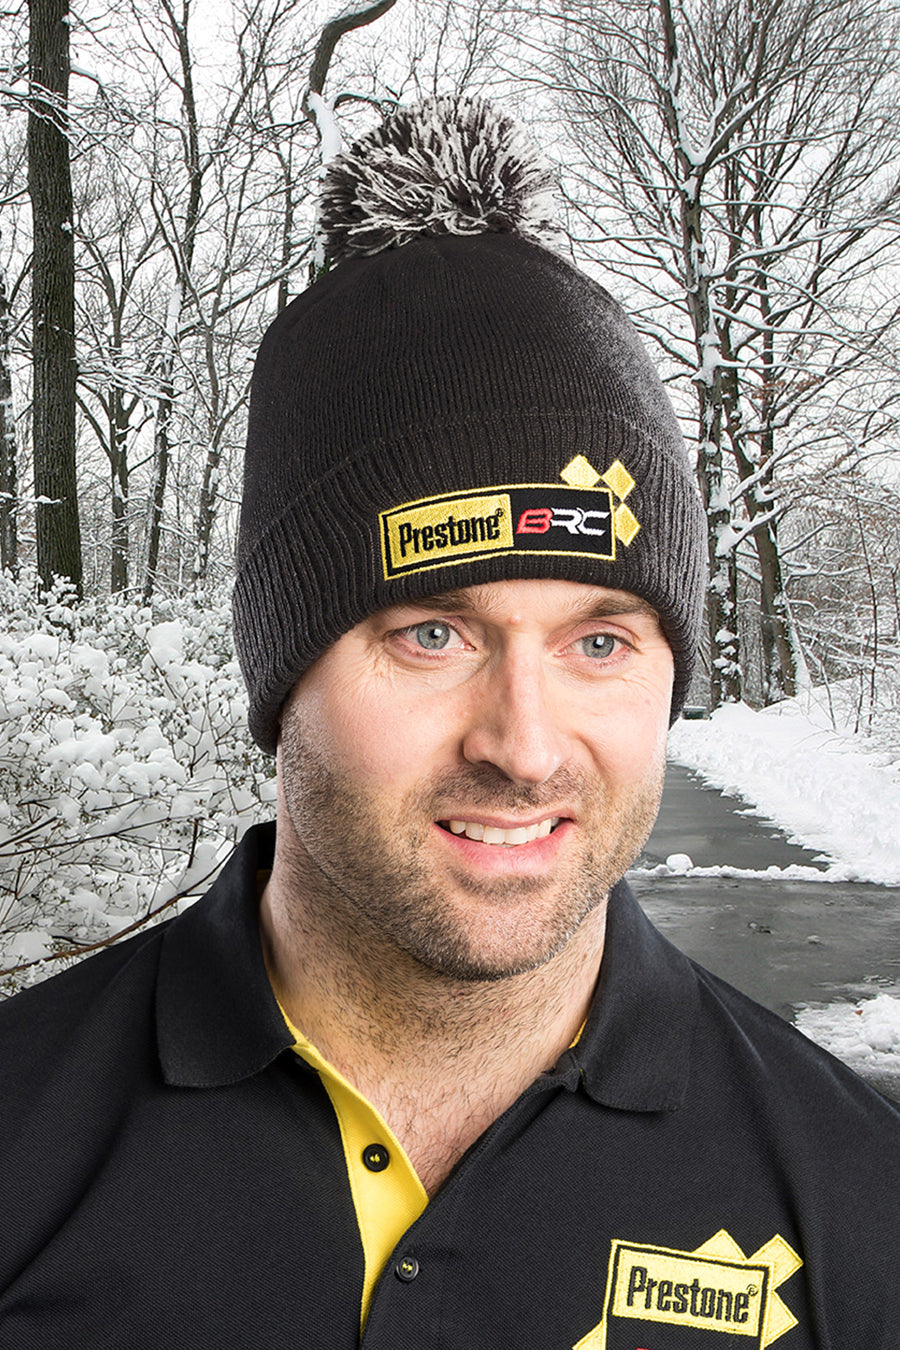 Official BRC Bobble Hat